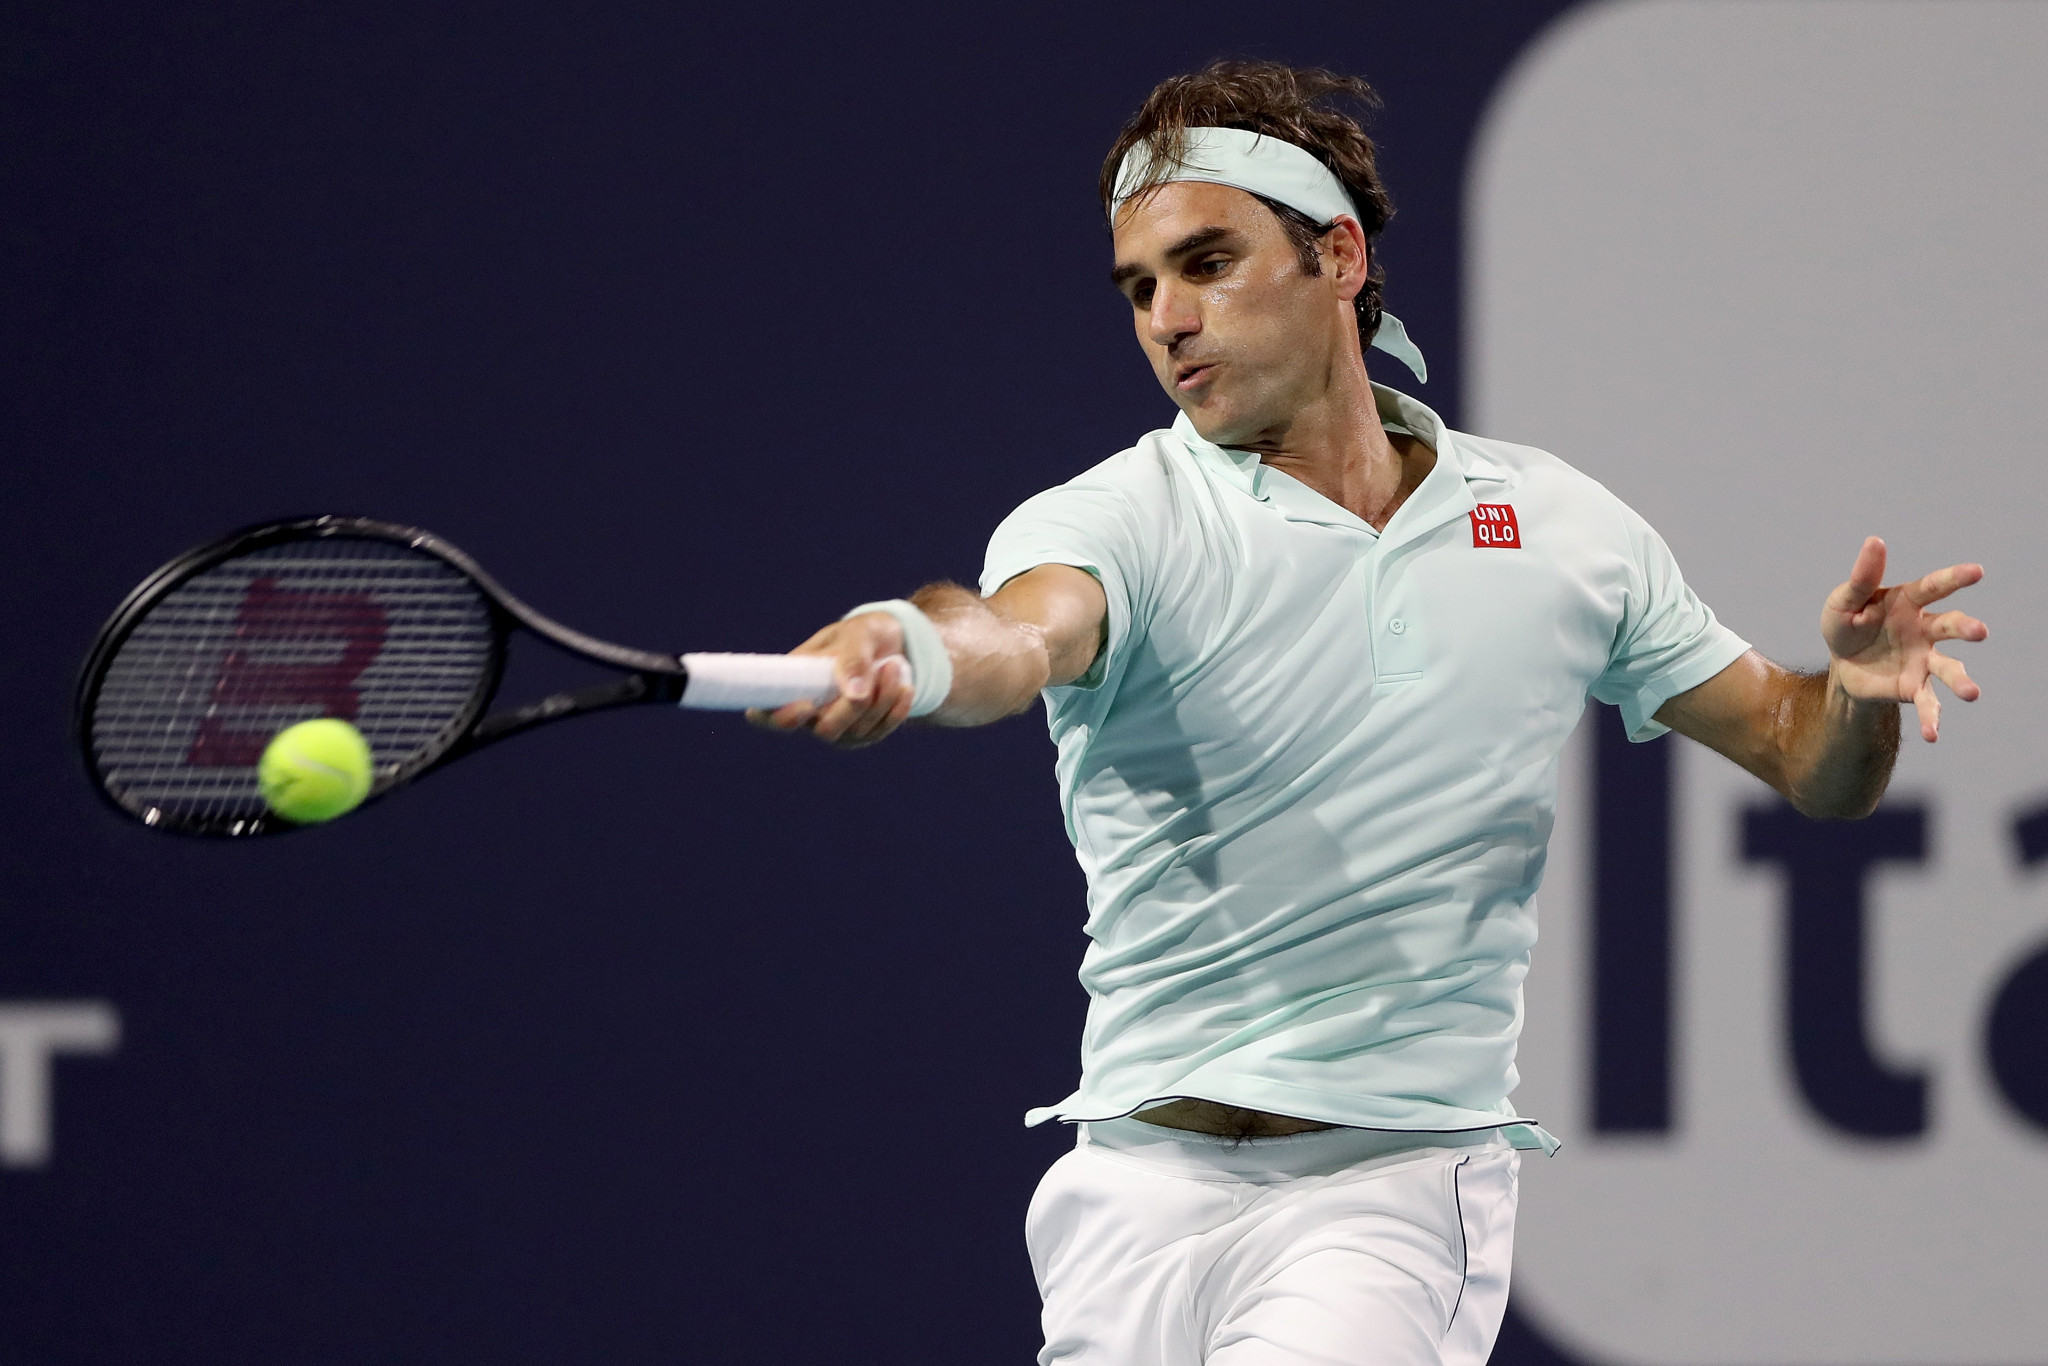 Switzerland's Roger Federer beat Canada's Denis Shapovalov in the semi-final of the Miami Open ©Getty Images